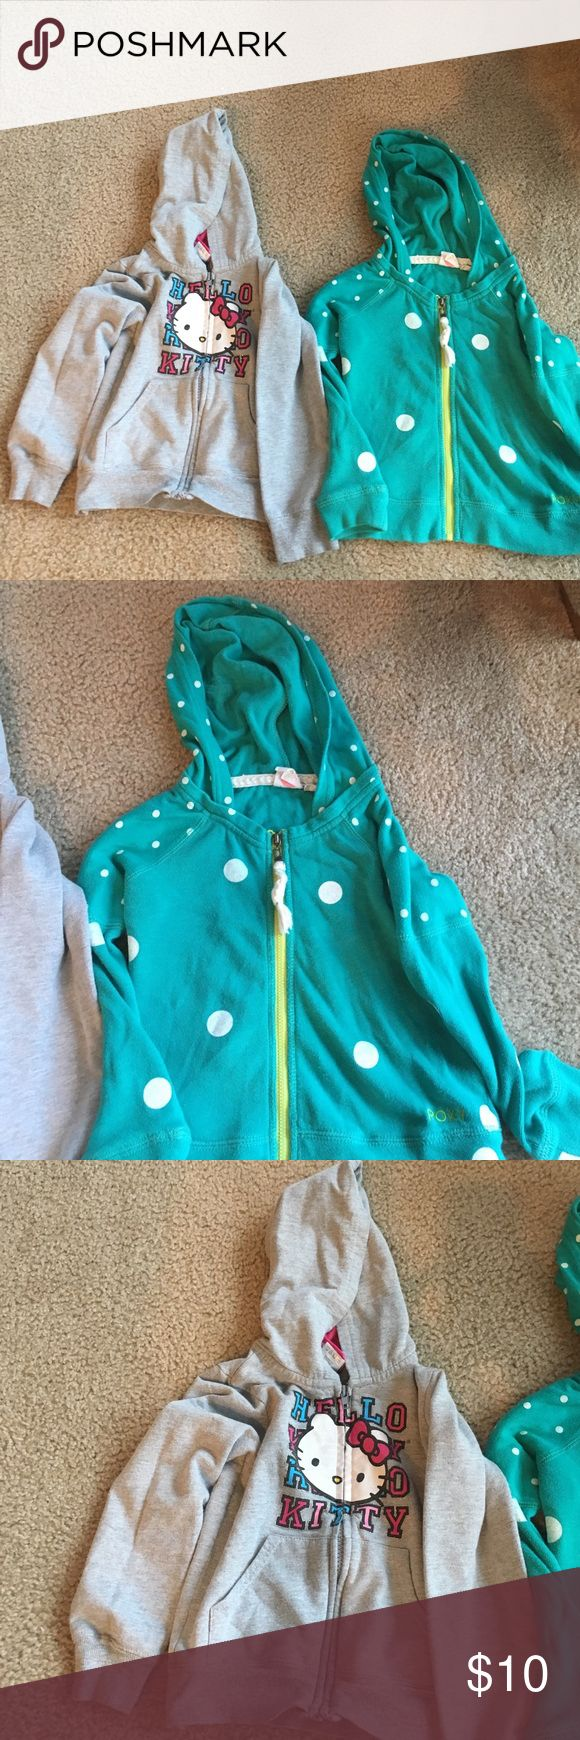 Two zip up hoodies Two zippered hoodies one Roxy teal with white polka dots light material size 4T hello kitty grey size 5T both are in great condition general wash and wear Roxy Jackets & Coats